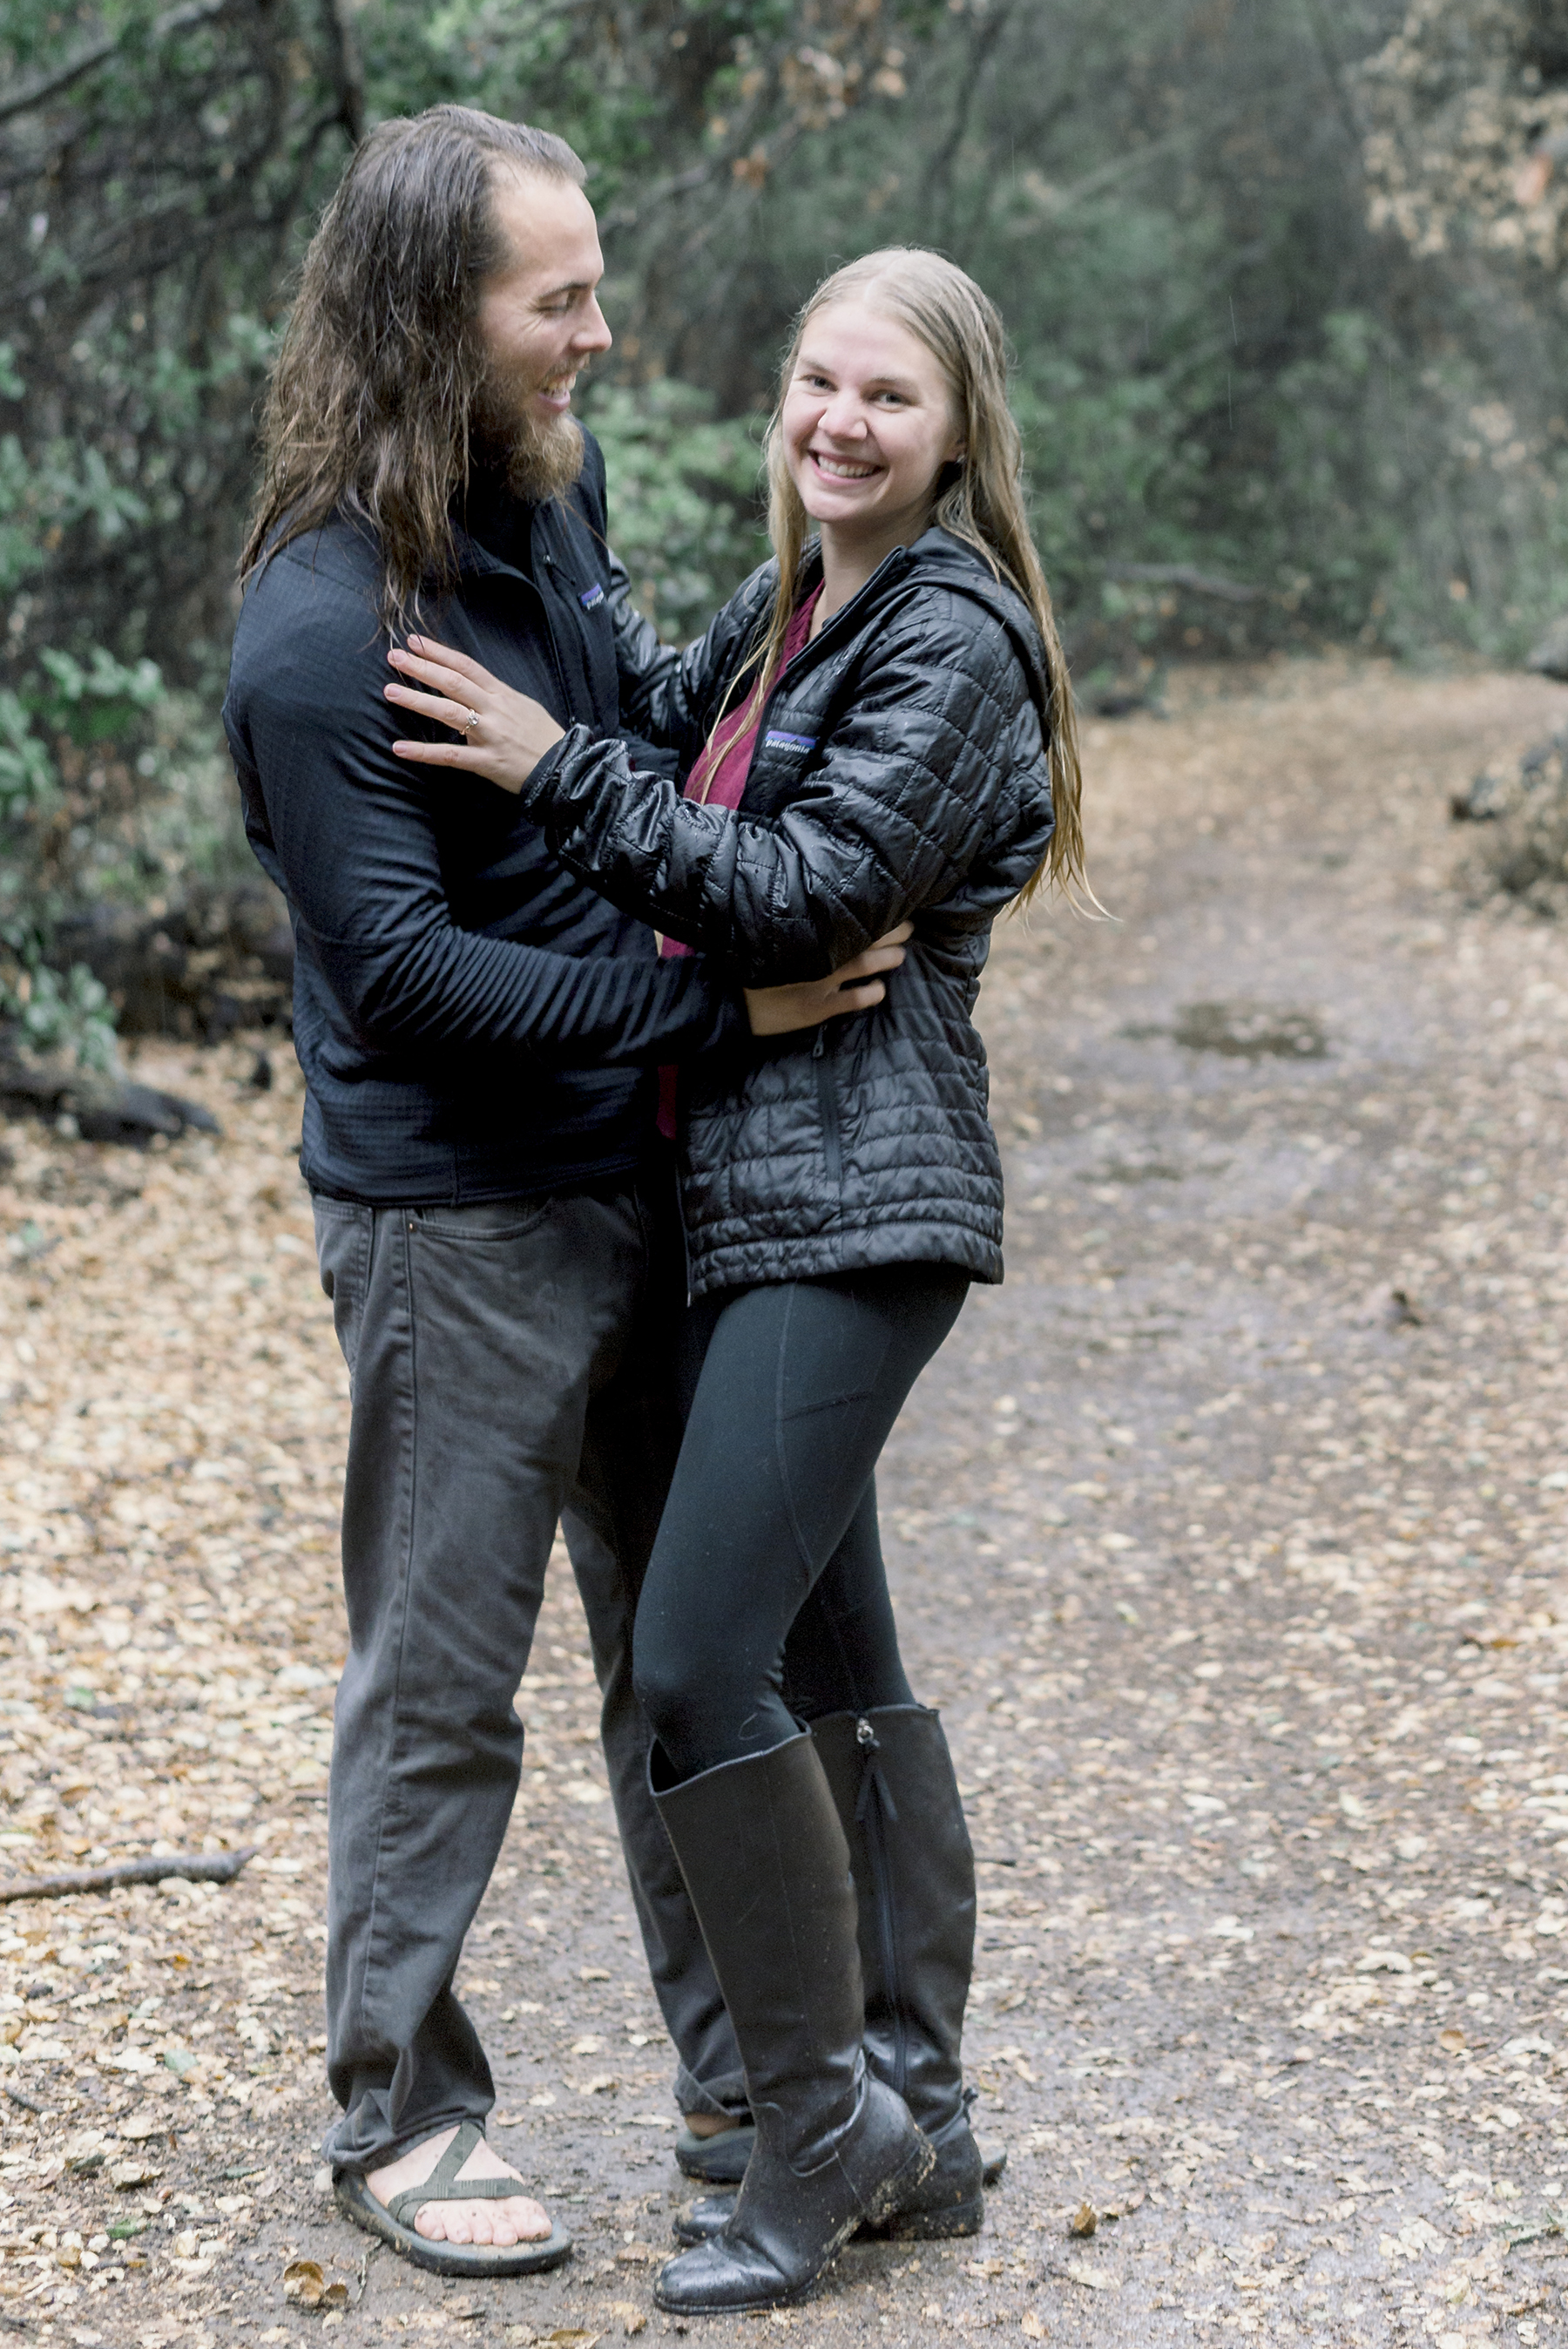 Rainy Day Engagement Session in Big Bear Victoria Parker05